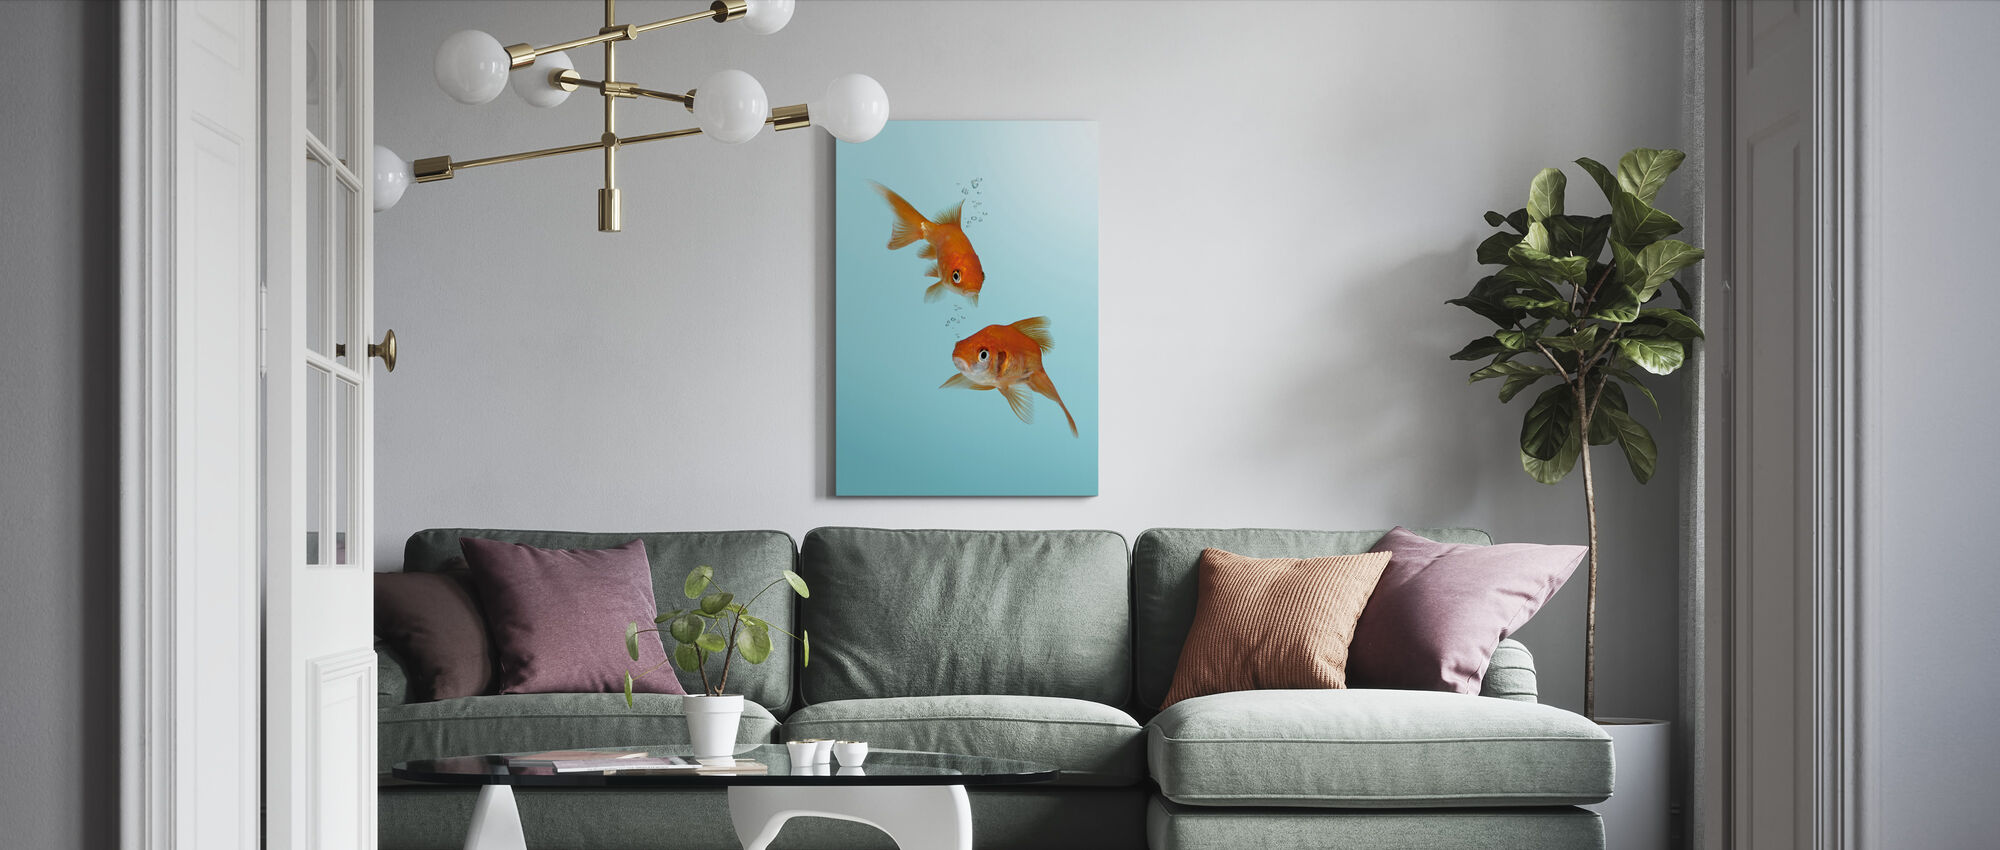 A Pair of Goldfish - Canvas print - Living Room